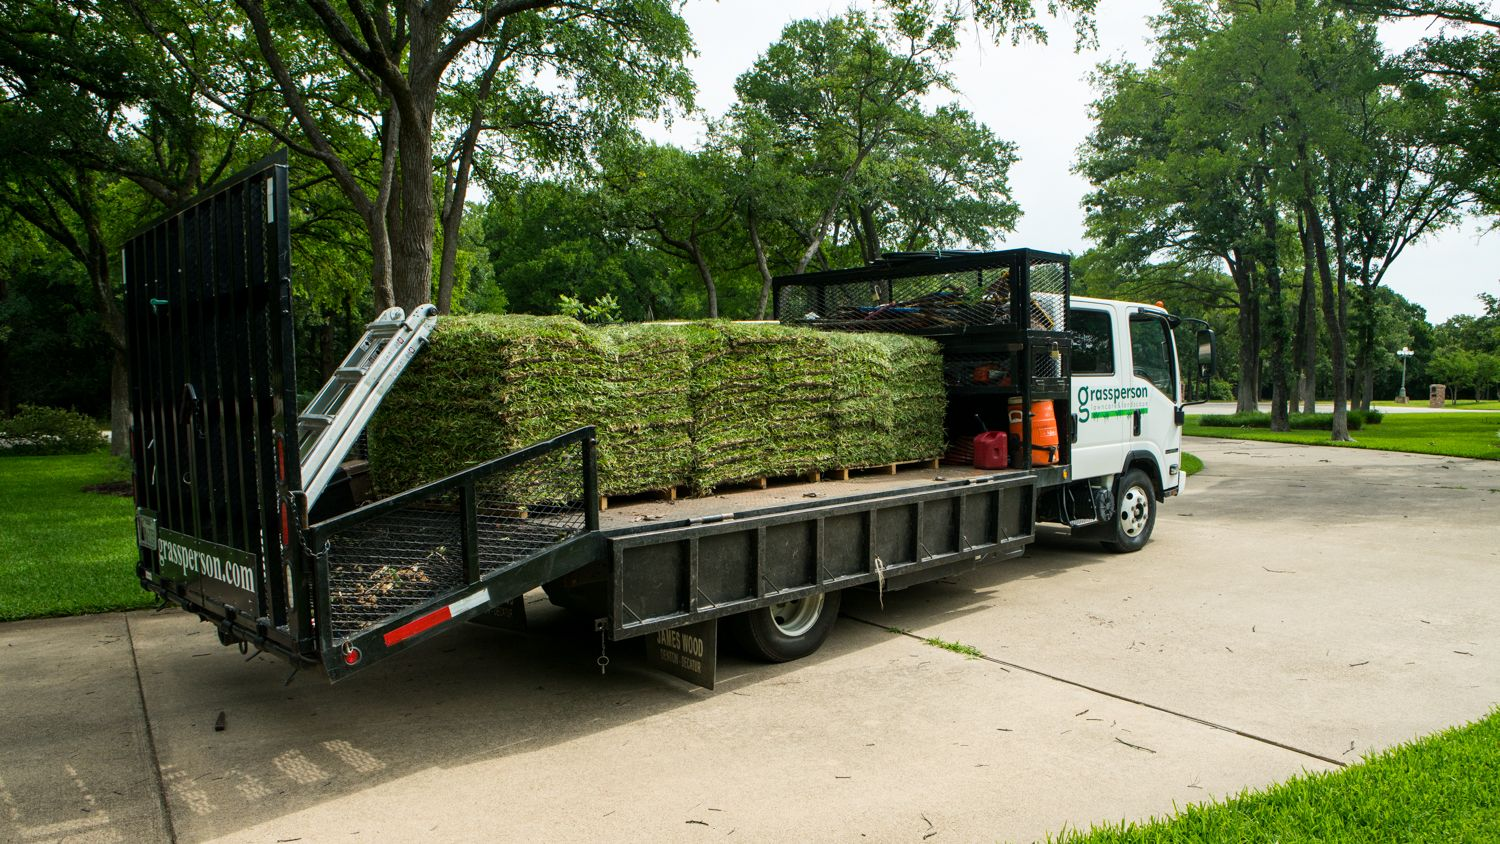 New Sod Care Guide: When to Water, Mow, & Fertilize New Sod in North Texas